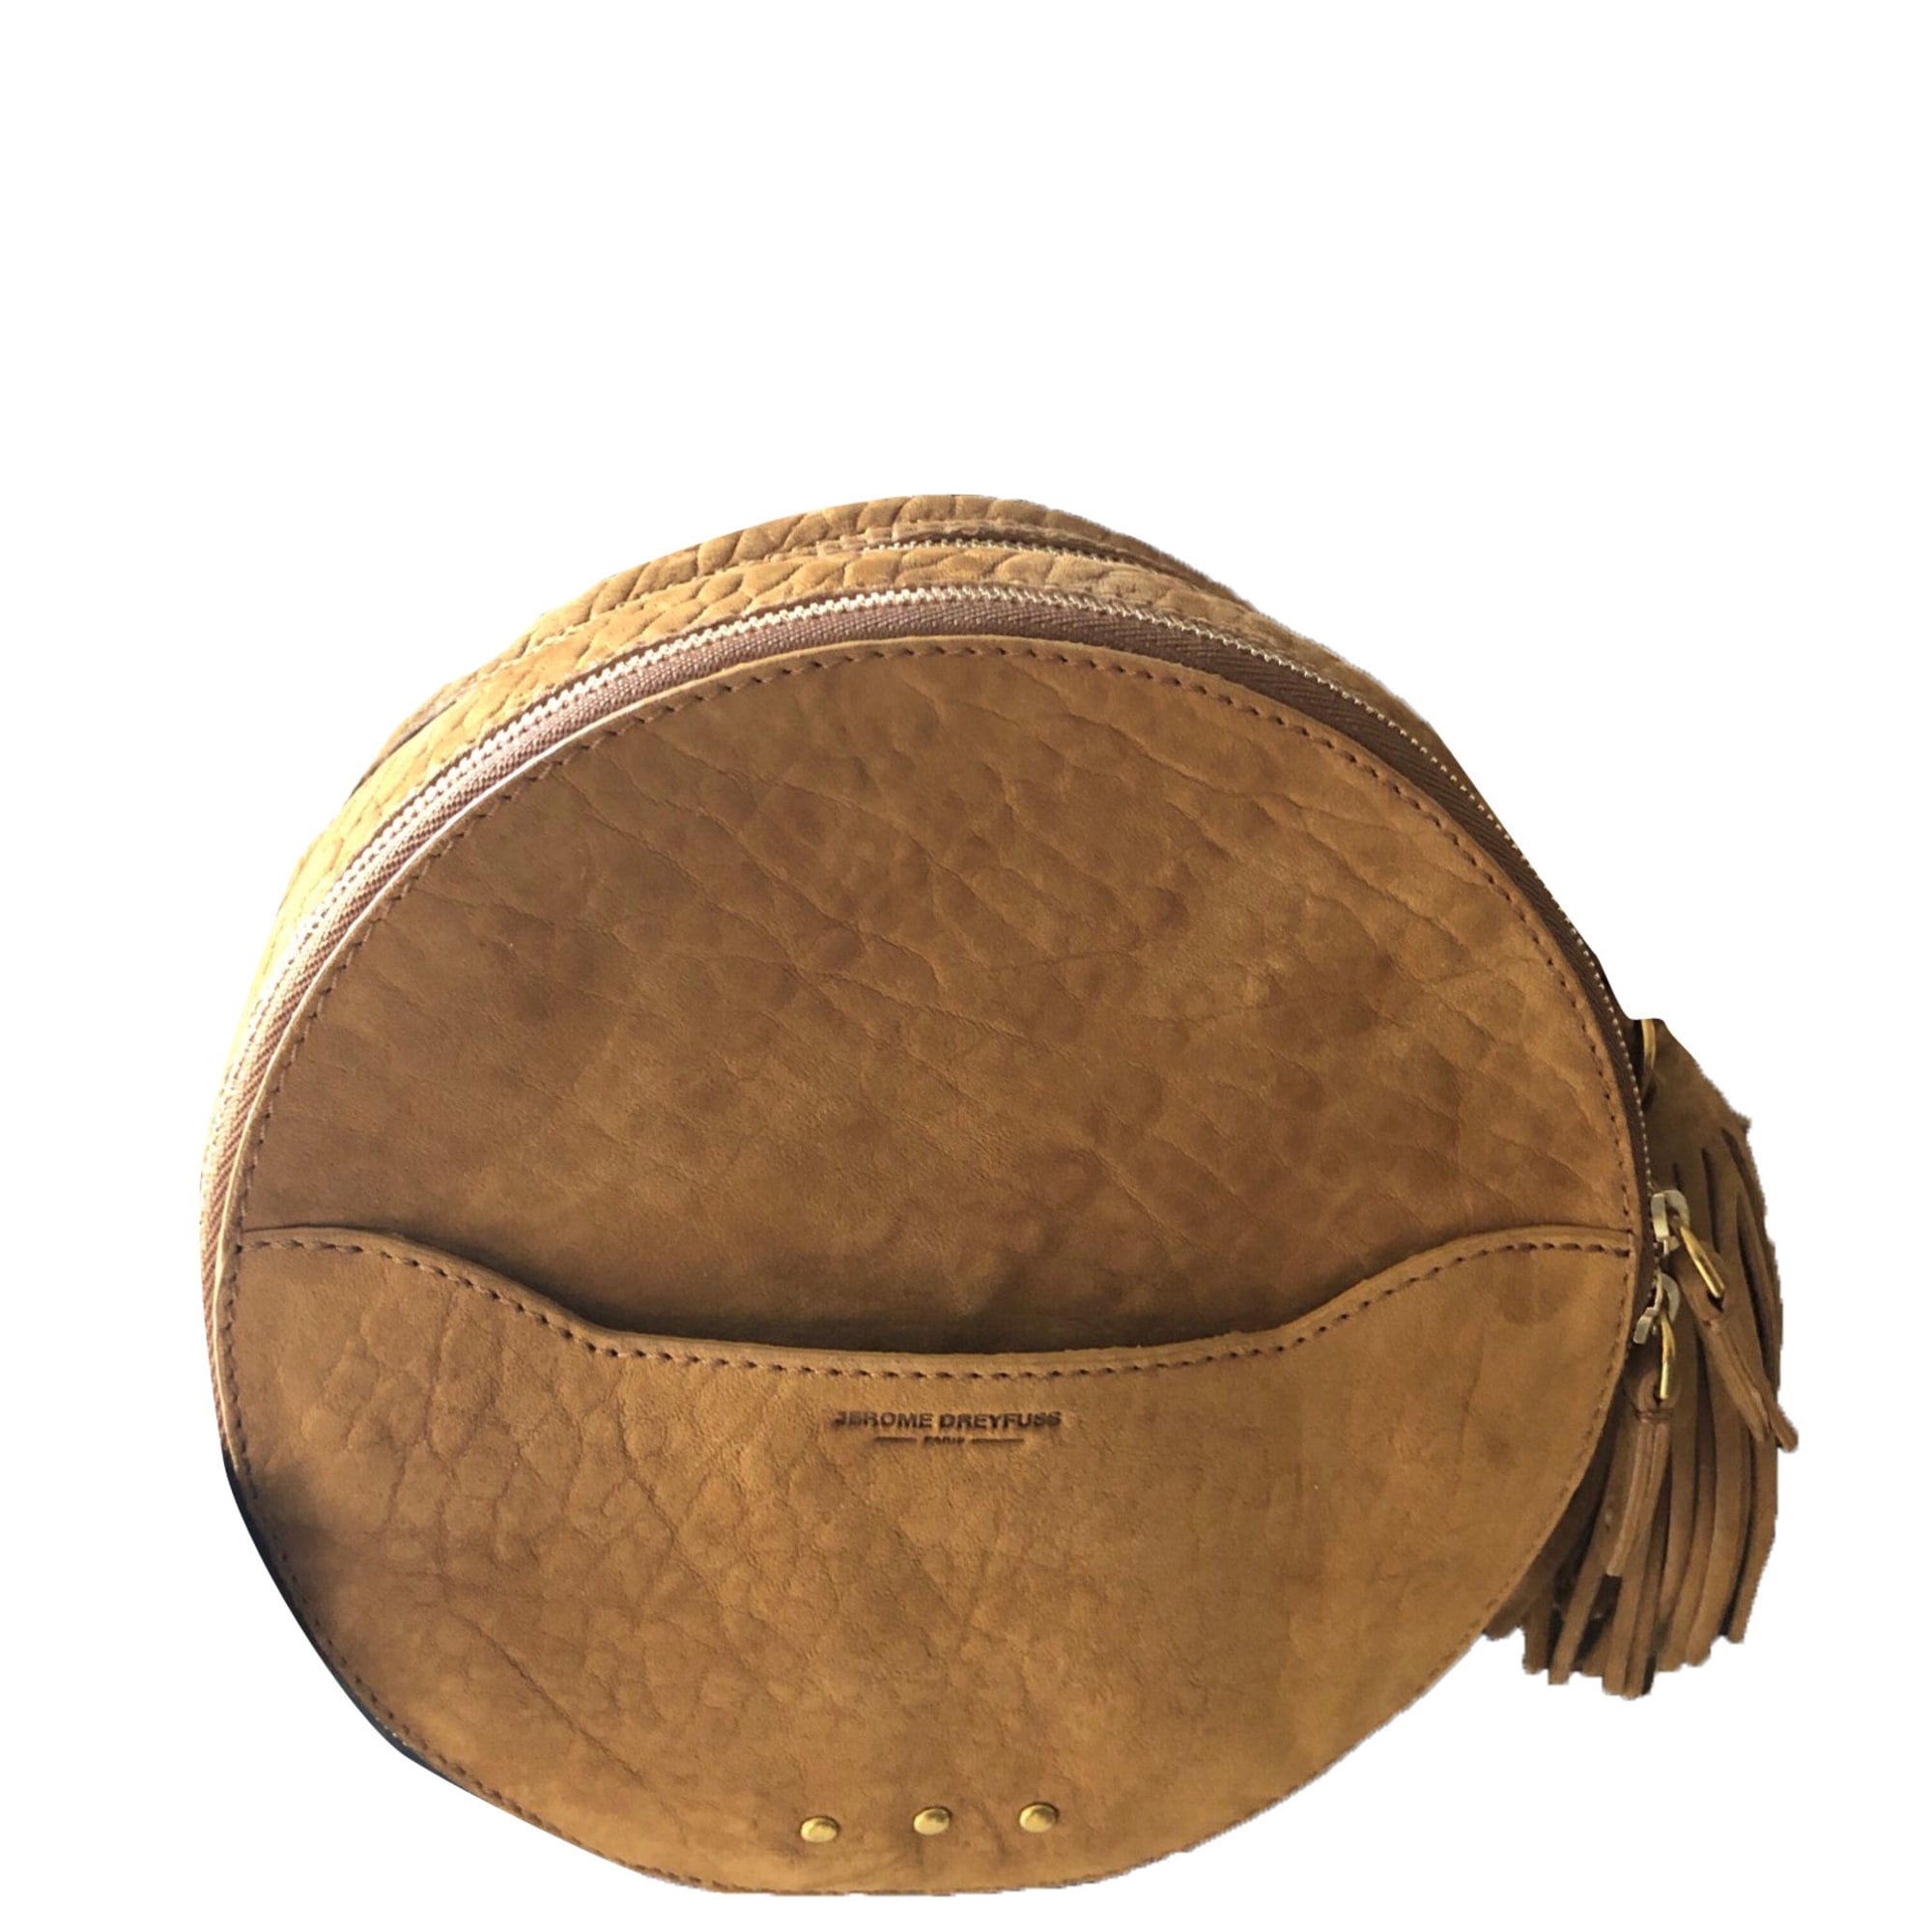 Leather Shoulder Bag JEROME DREYFUSS Beige, camel